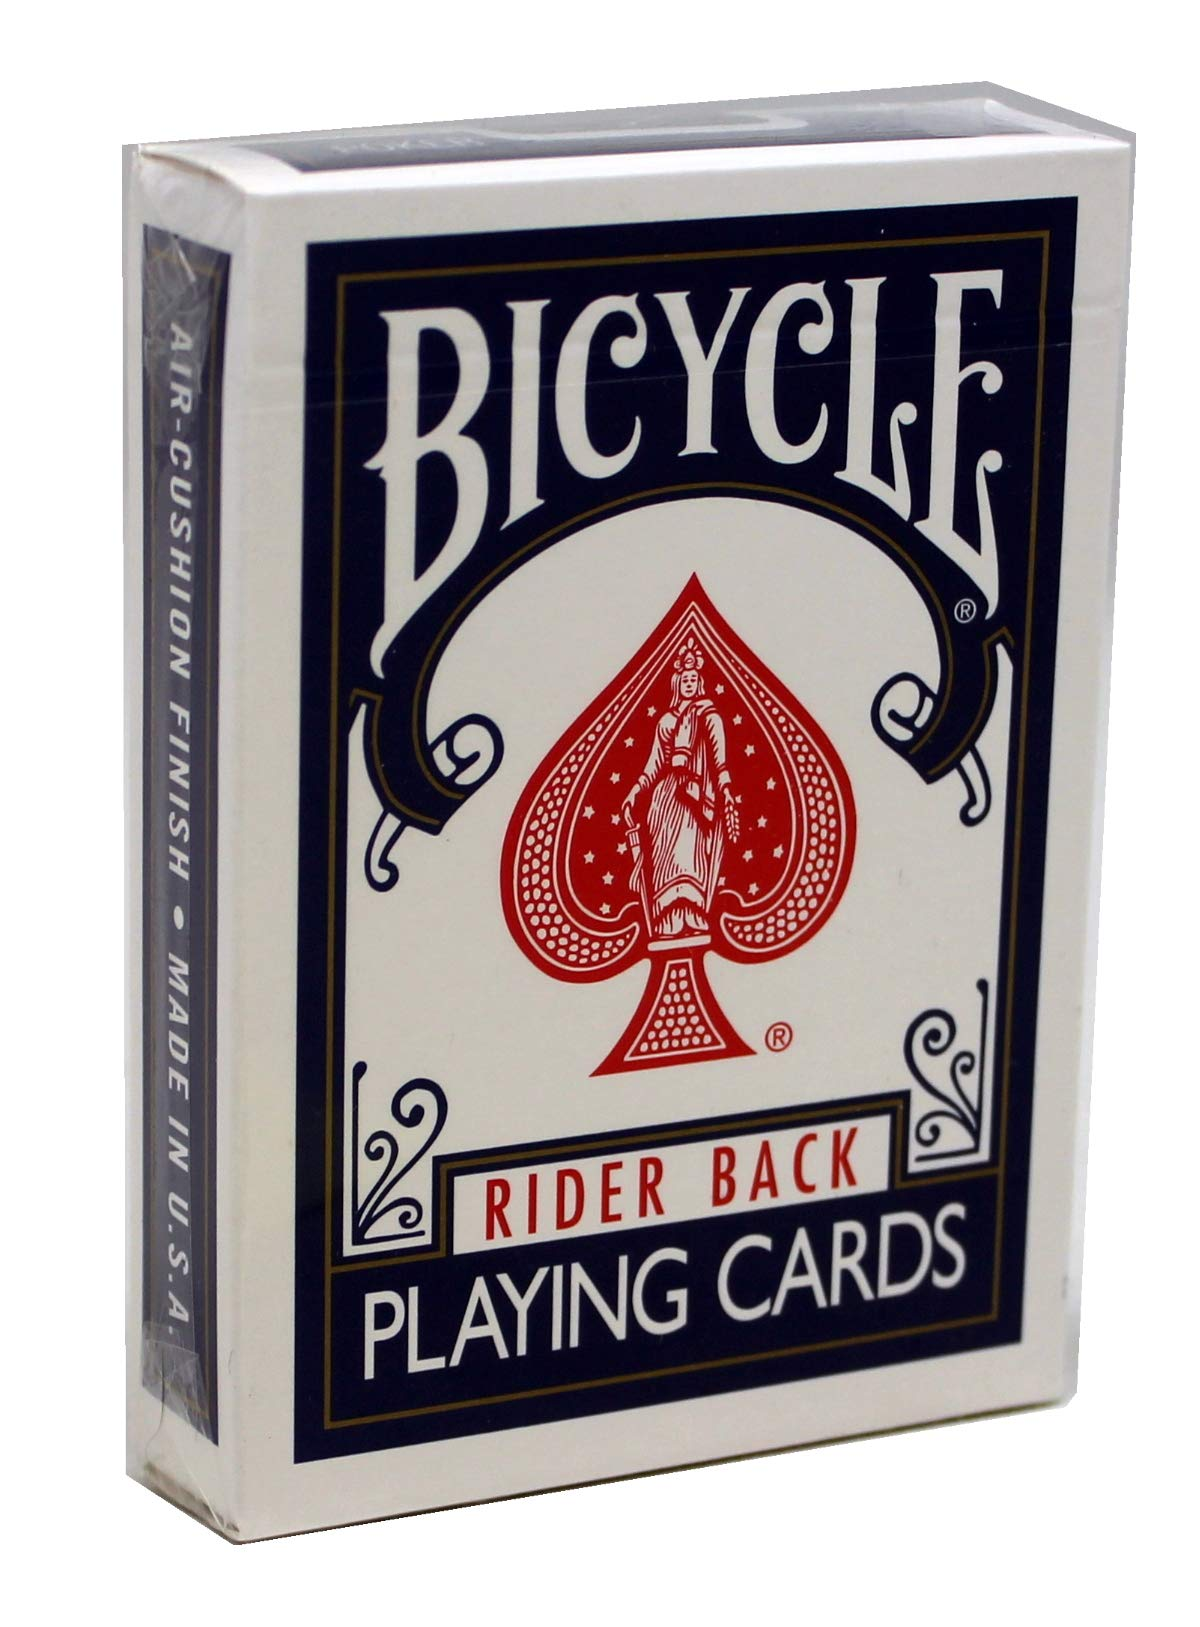 Ultimate Marked Deck (BLUE Back Bicycle Cards) - Trick by Magic Dream (Image #1)